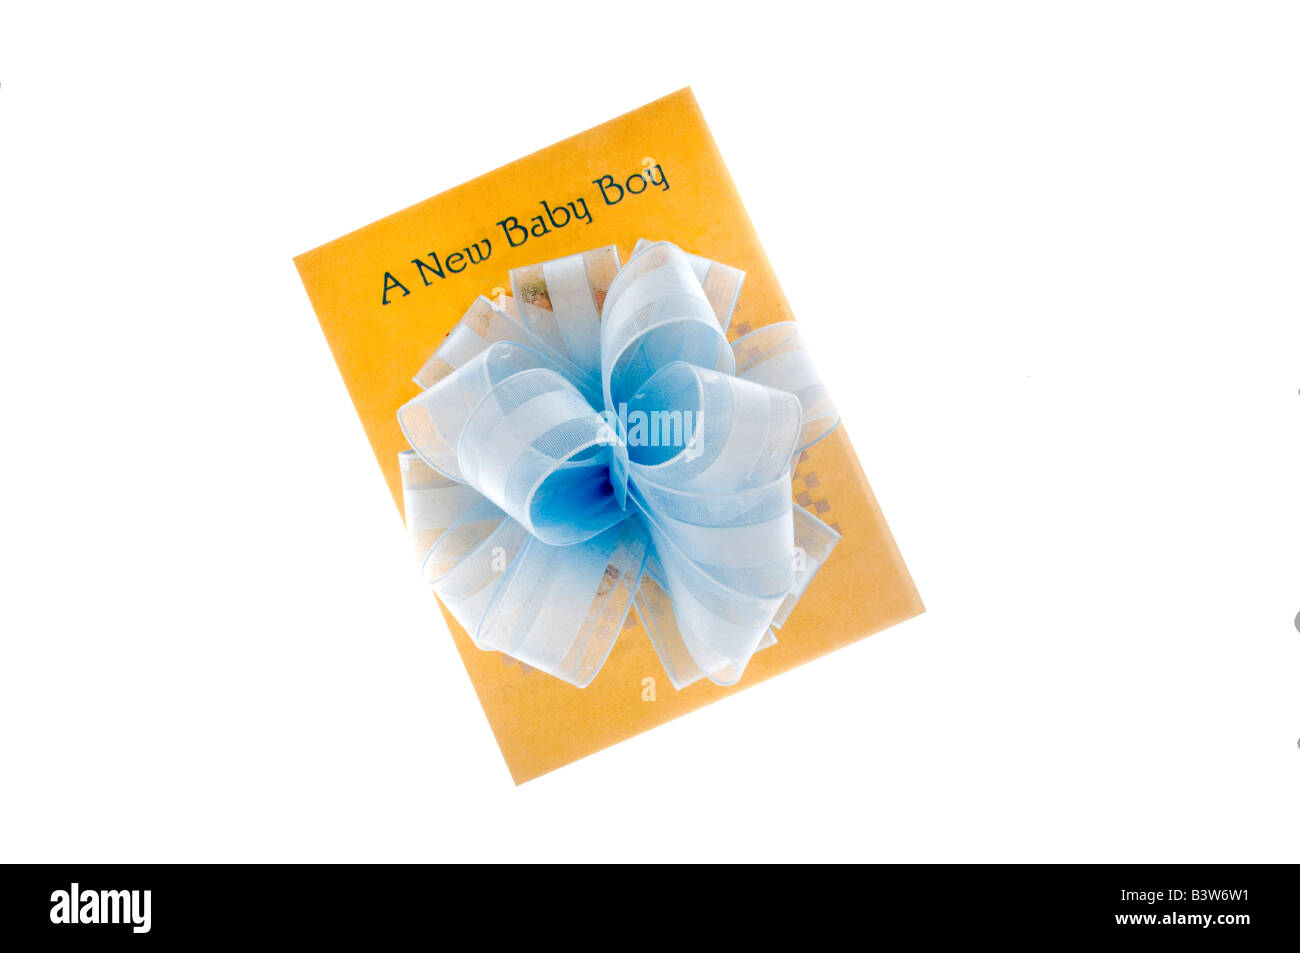 Baby boy card and blue bow on white - Stock Image